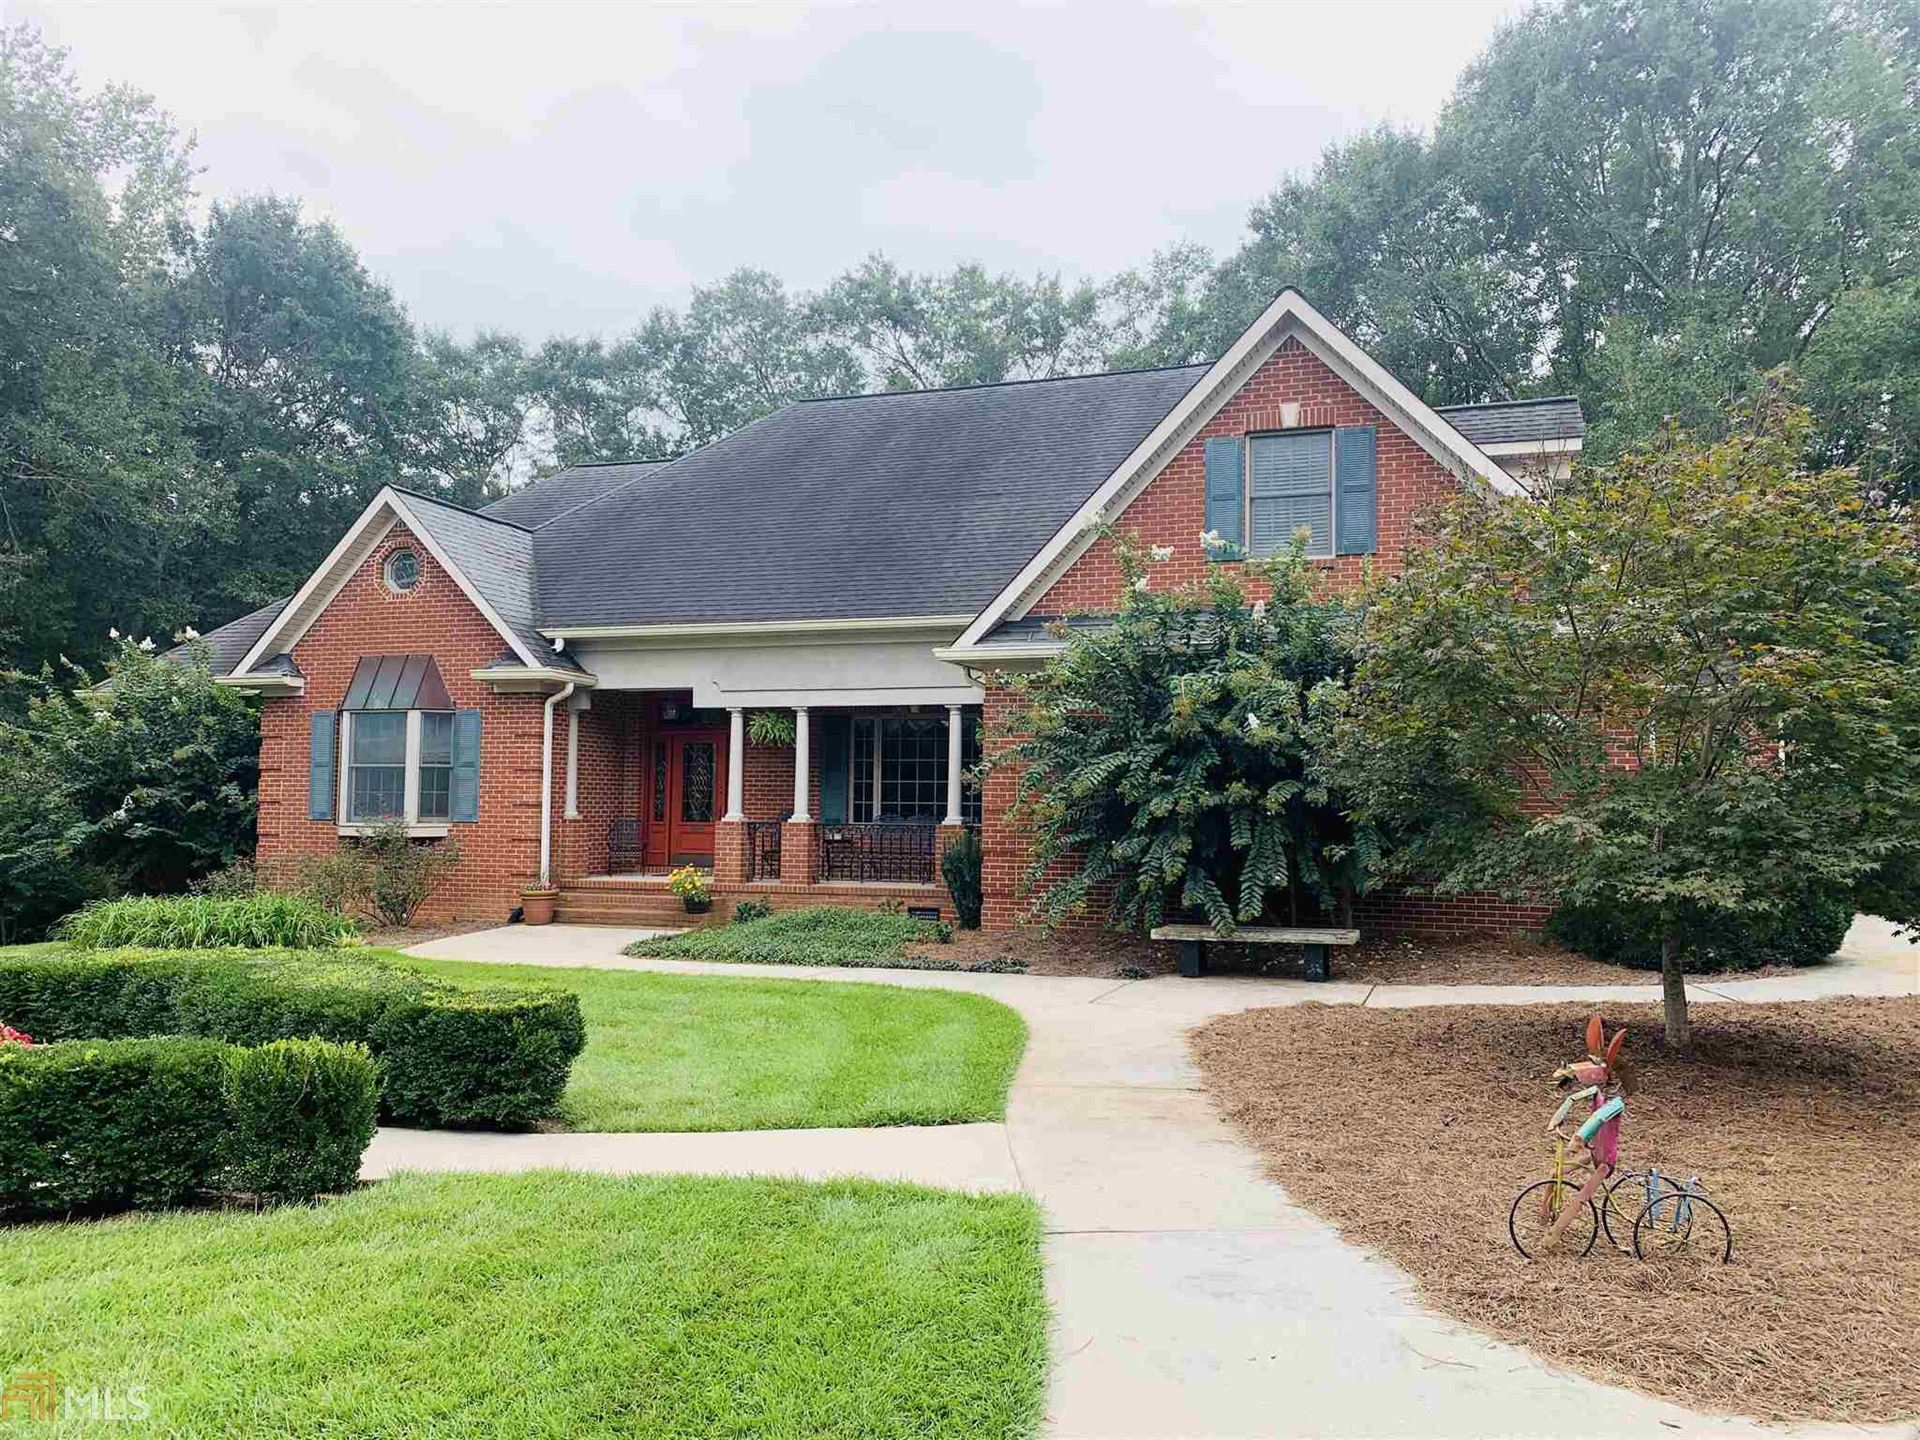 206 Maplewood Cir, Griffin, GA 30224 - #: 8857081